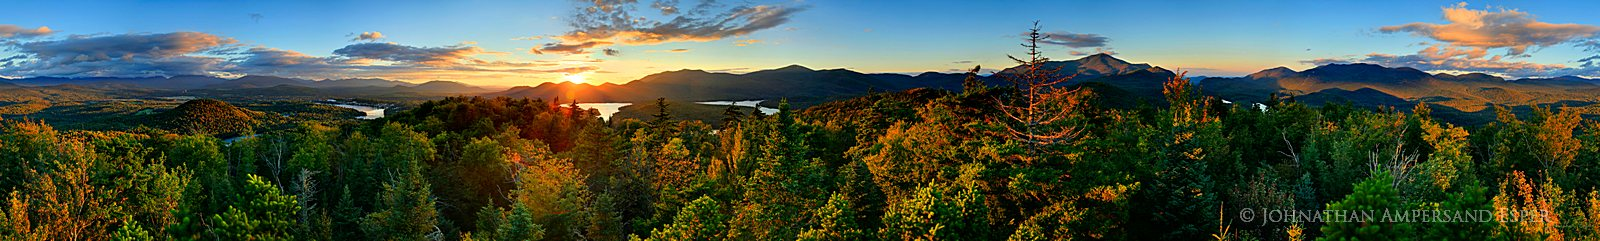 Mt Whitney,Lake Placid,treetop,360 degree,panorama,summer sunset,Lake Placid region,Mt Whitney Treetop,360, photo